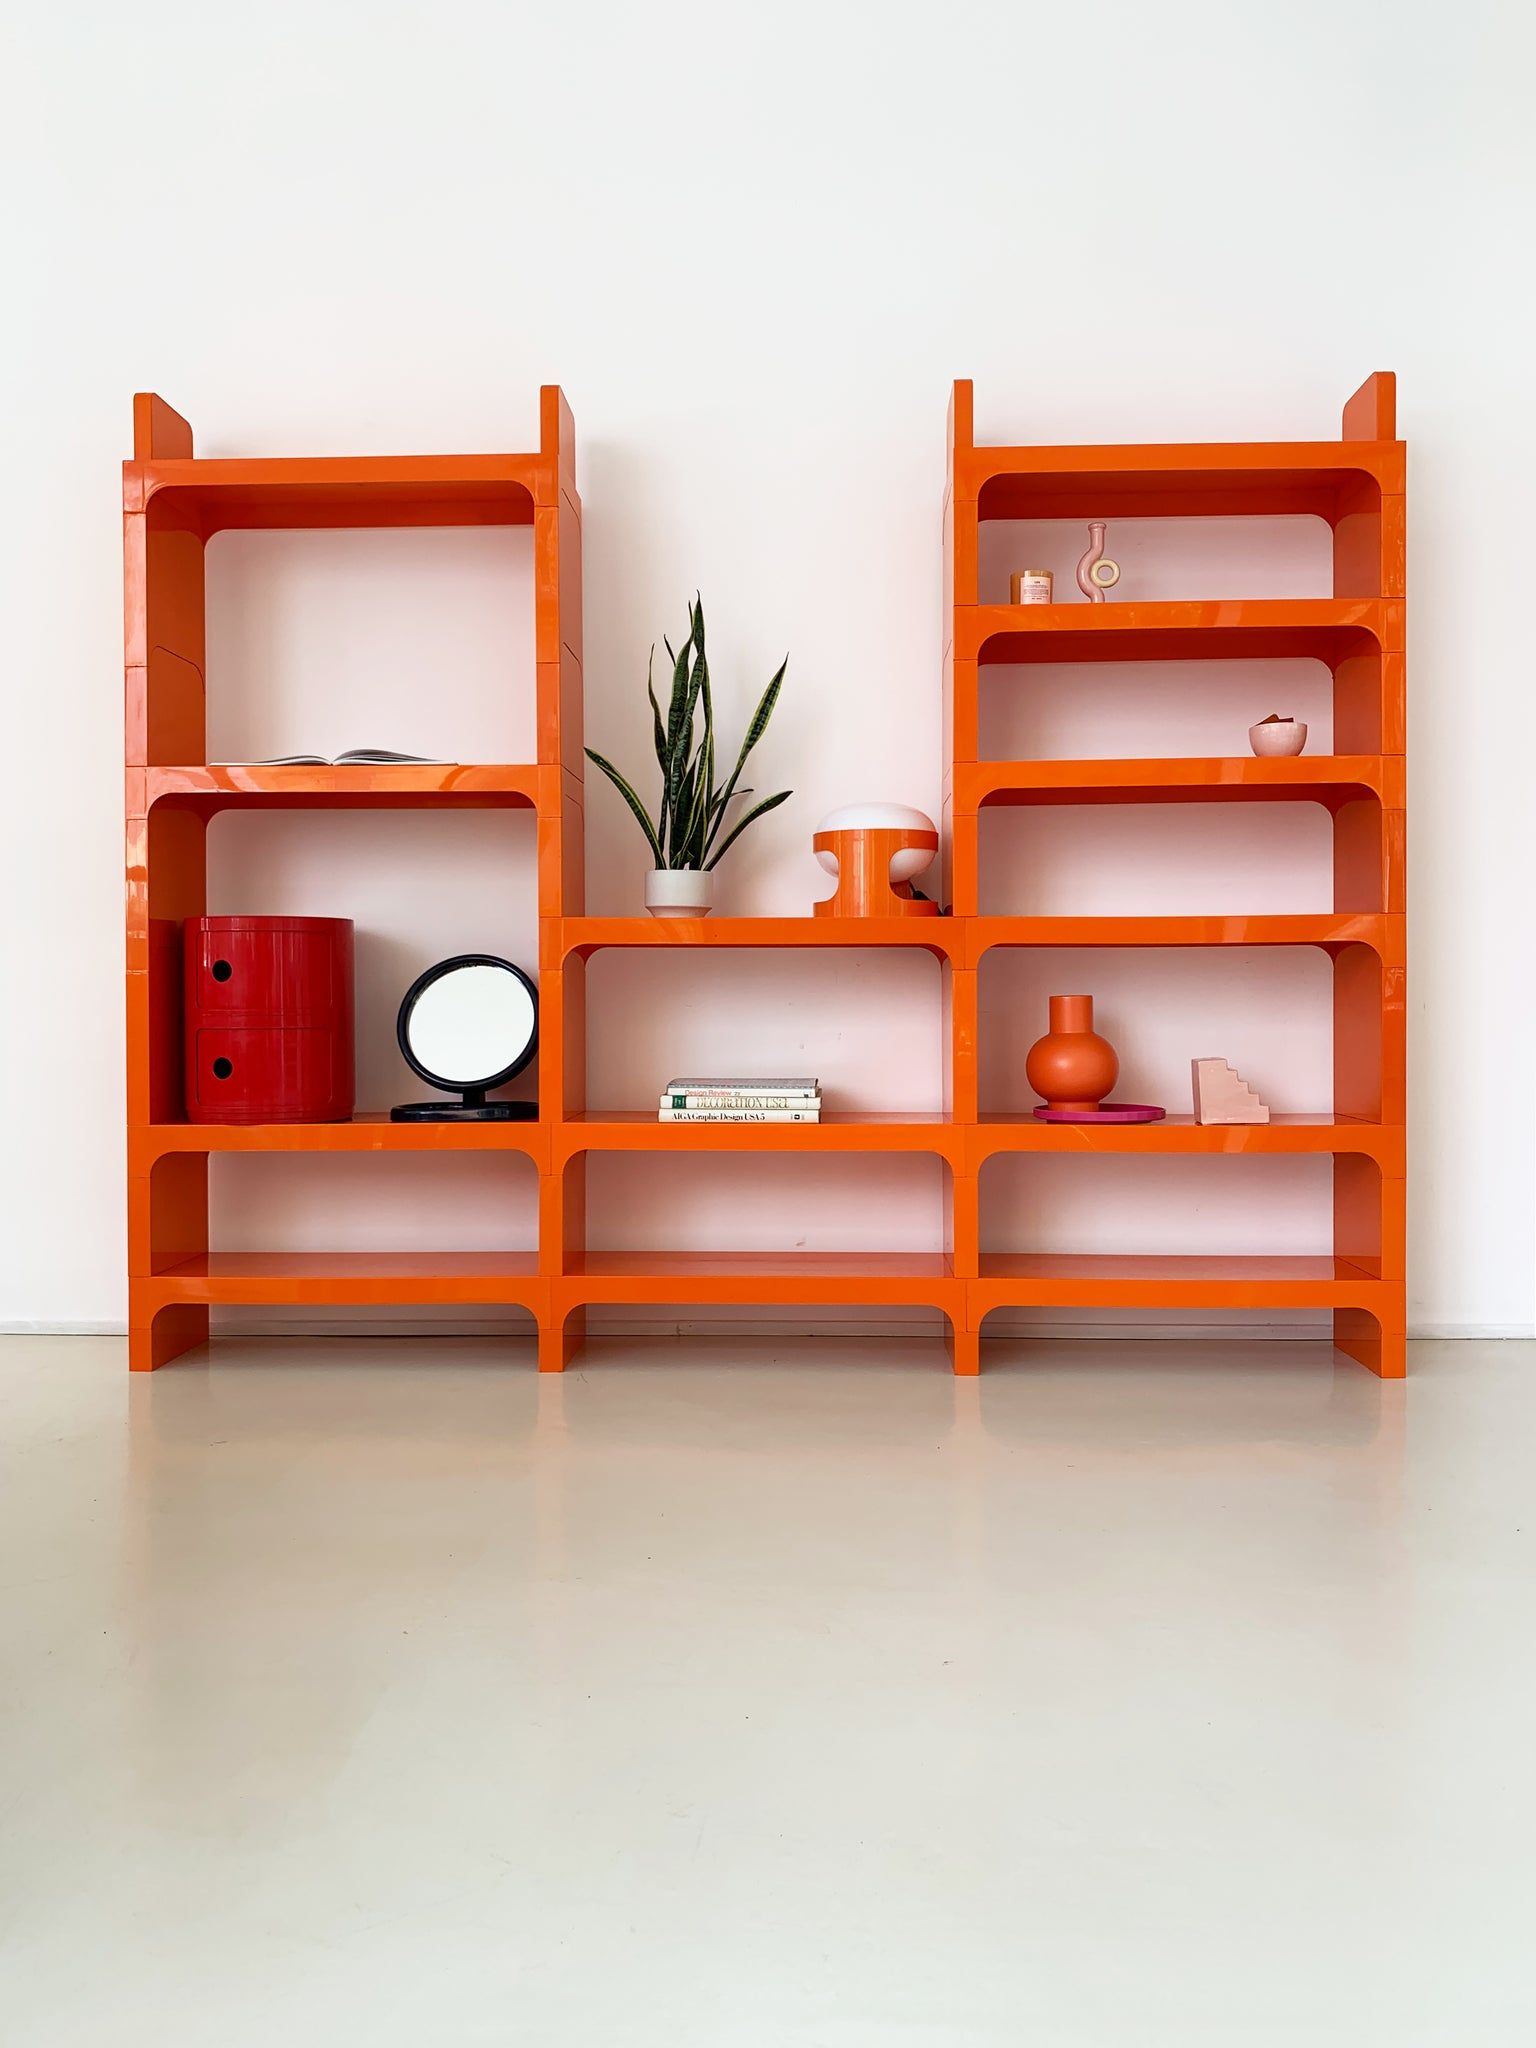 1970s Orange ABS Plastic Bookcase by Olaf Von Bohr for Kartell- 3 Bays